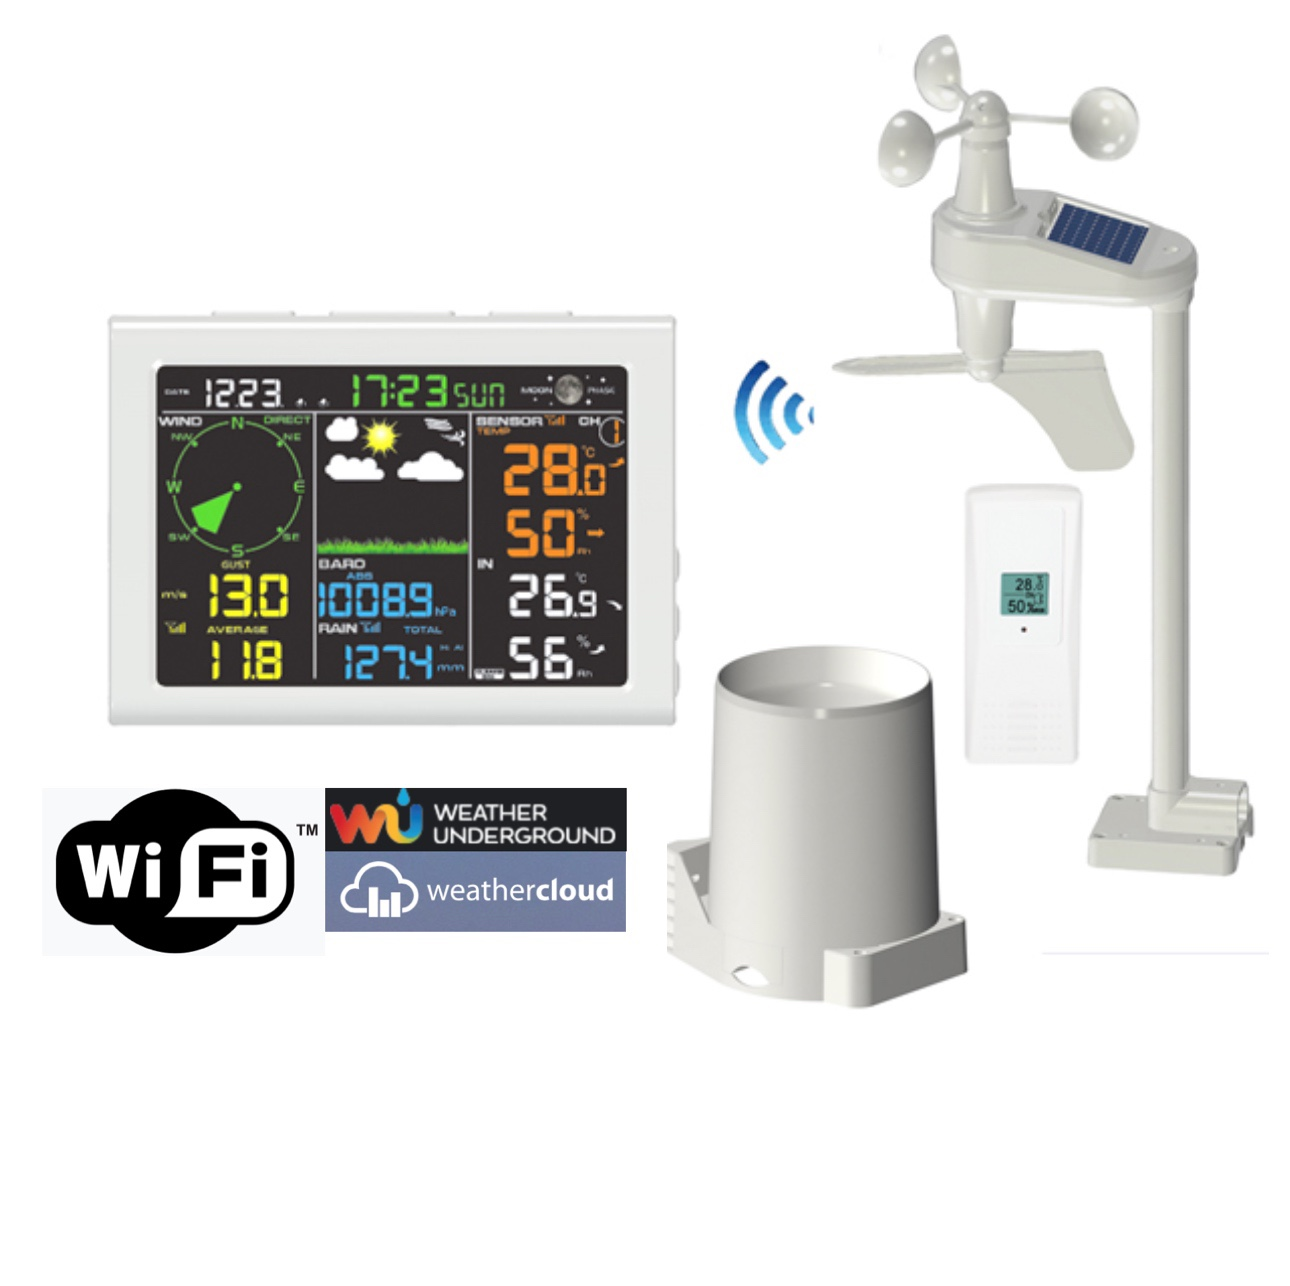 FT-0830-WIFI Professional Color Display Internet Weather St